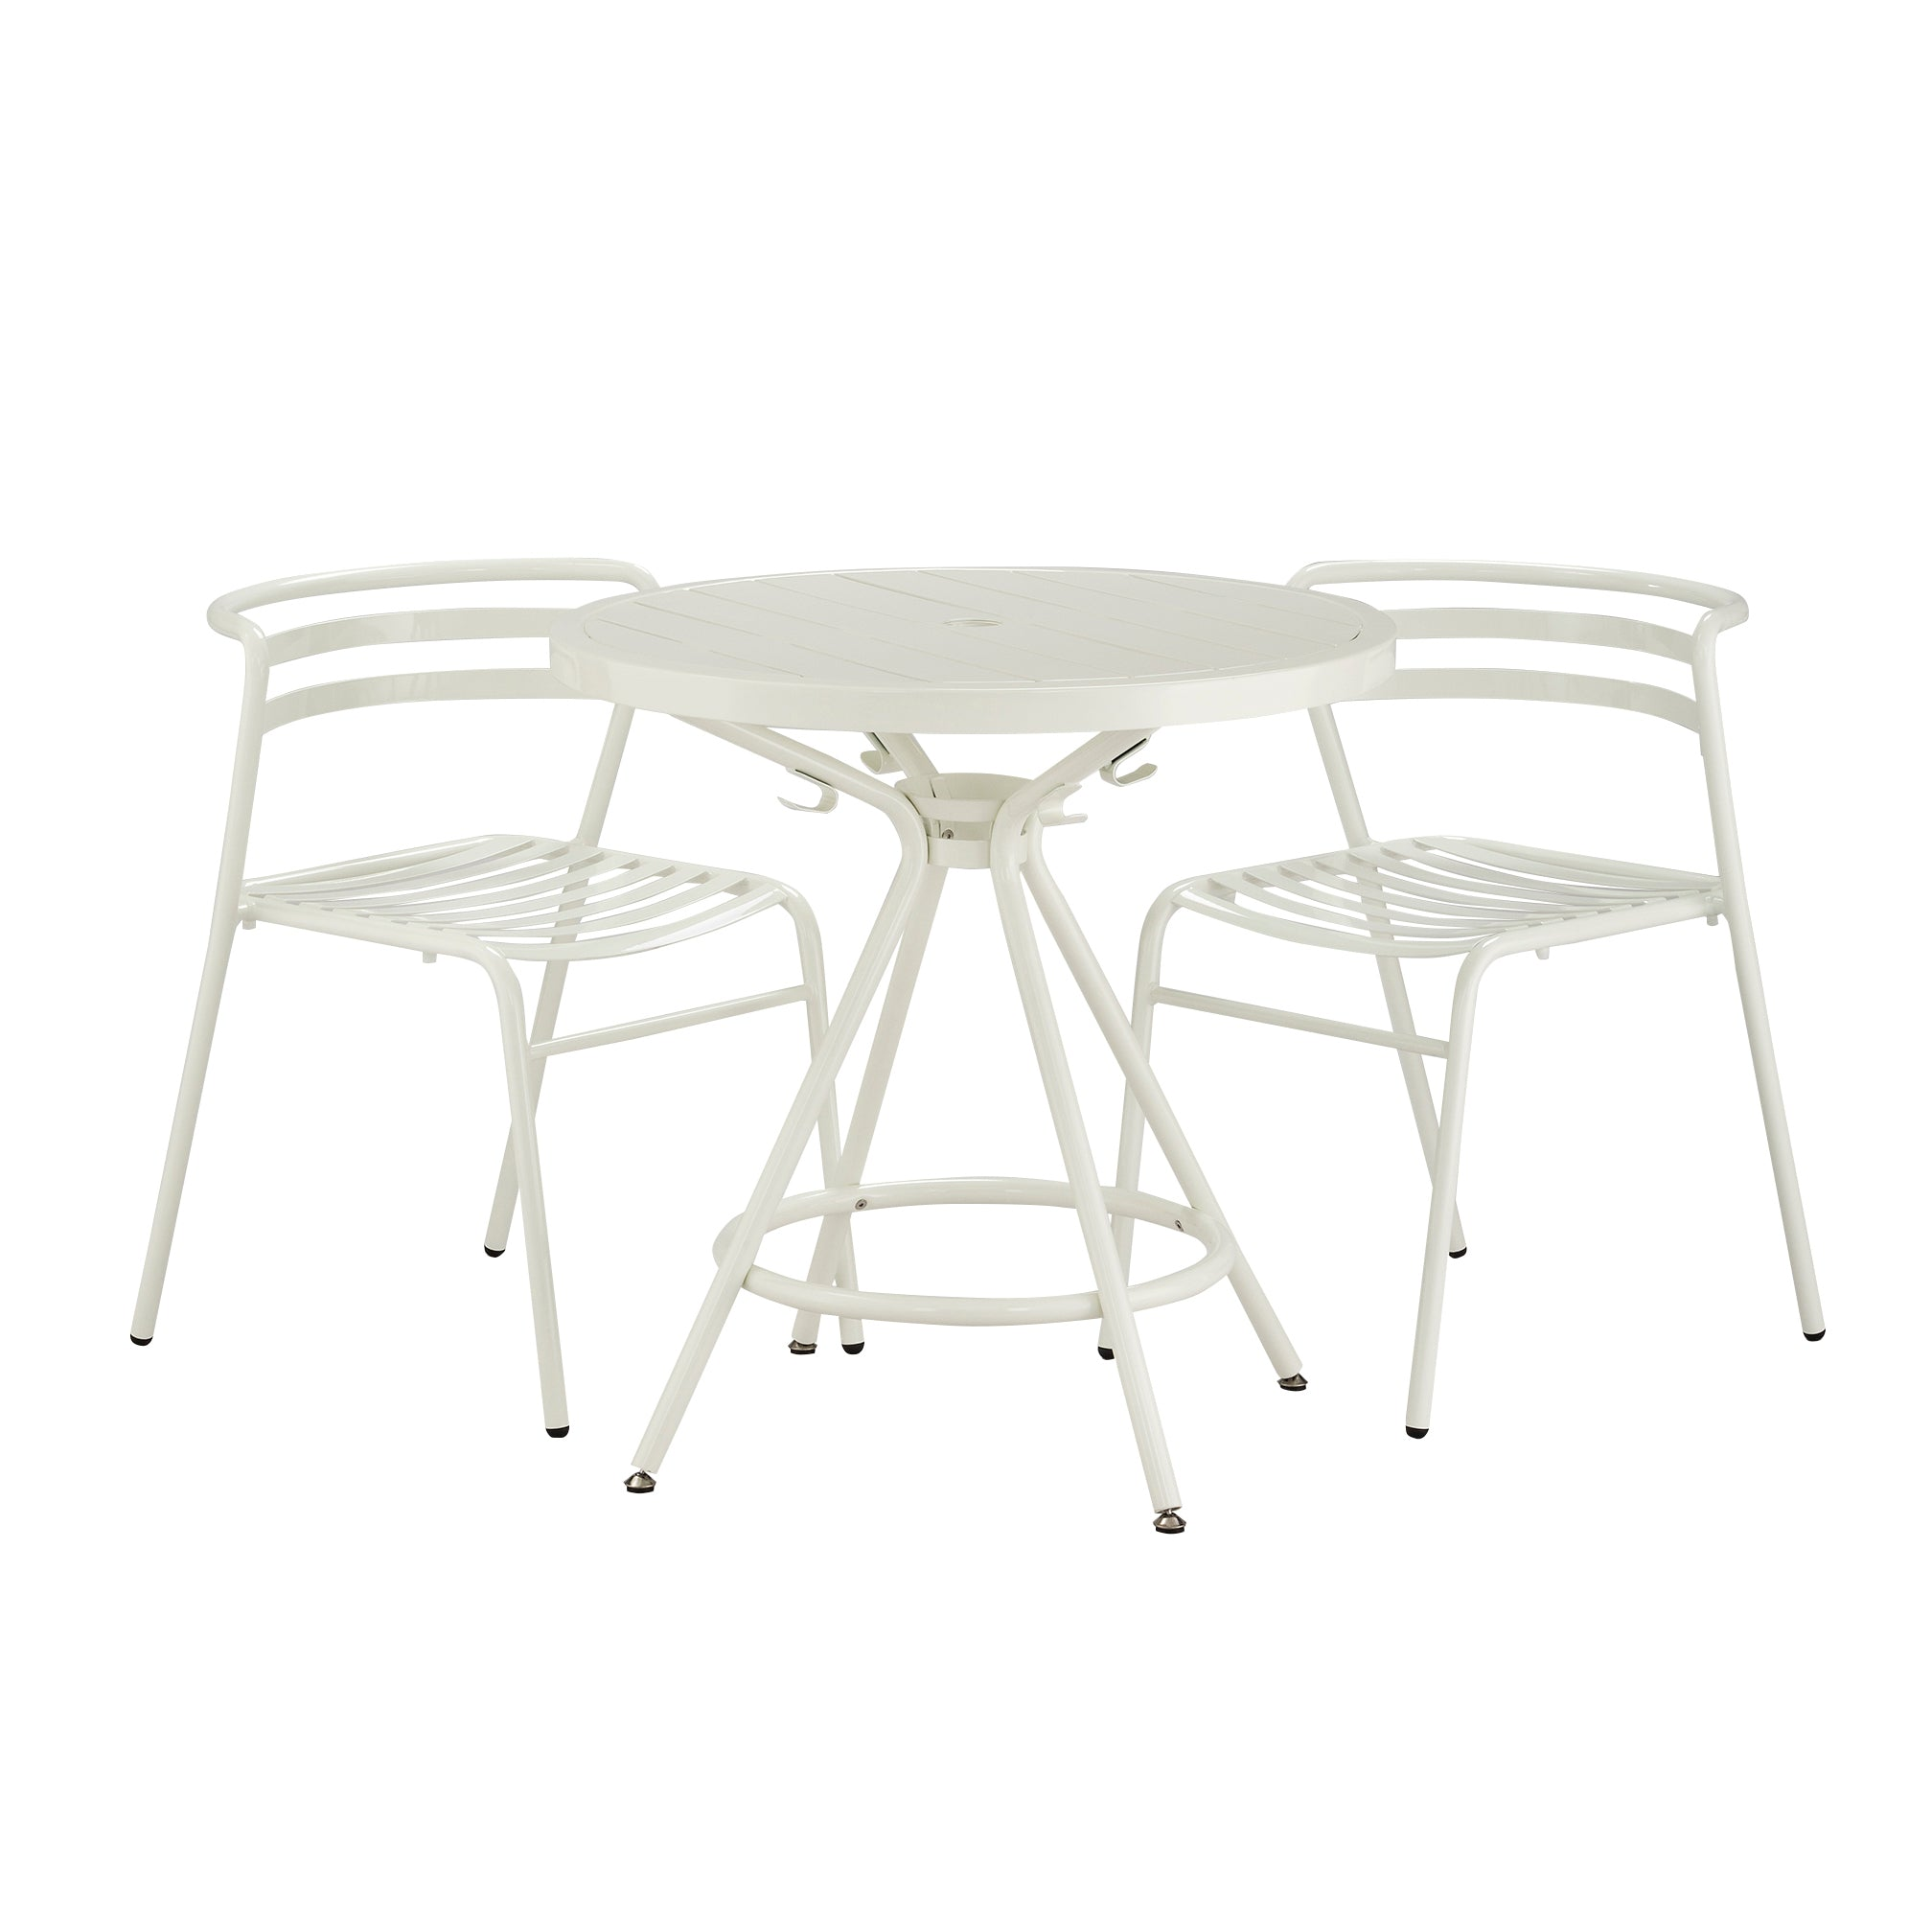 Cogo Indoor/Outdoor Tables